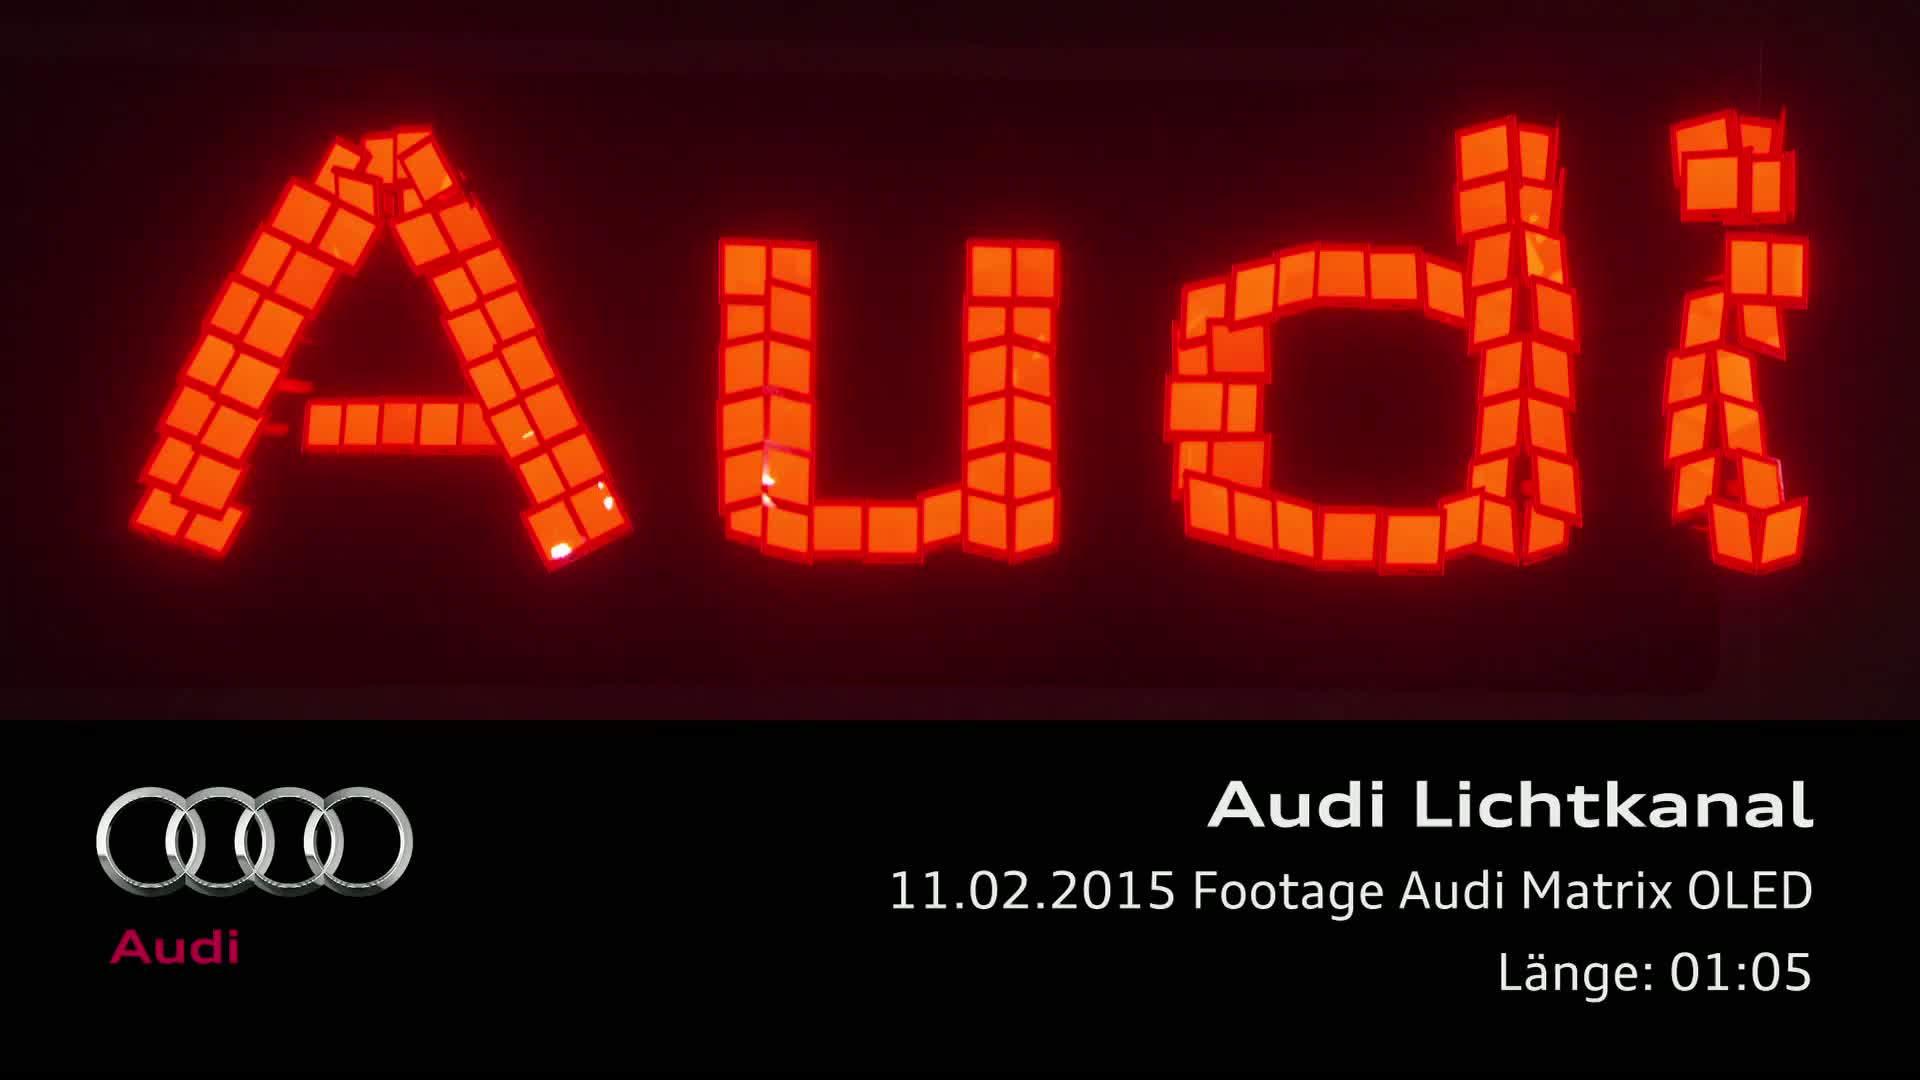 Audi future lab - Footage Audi Matrix OLED